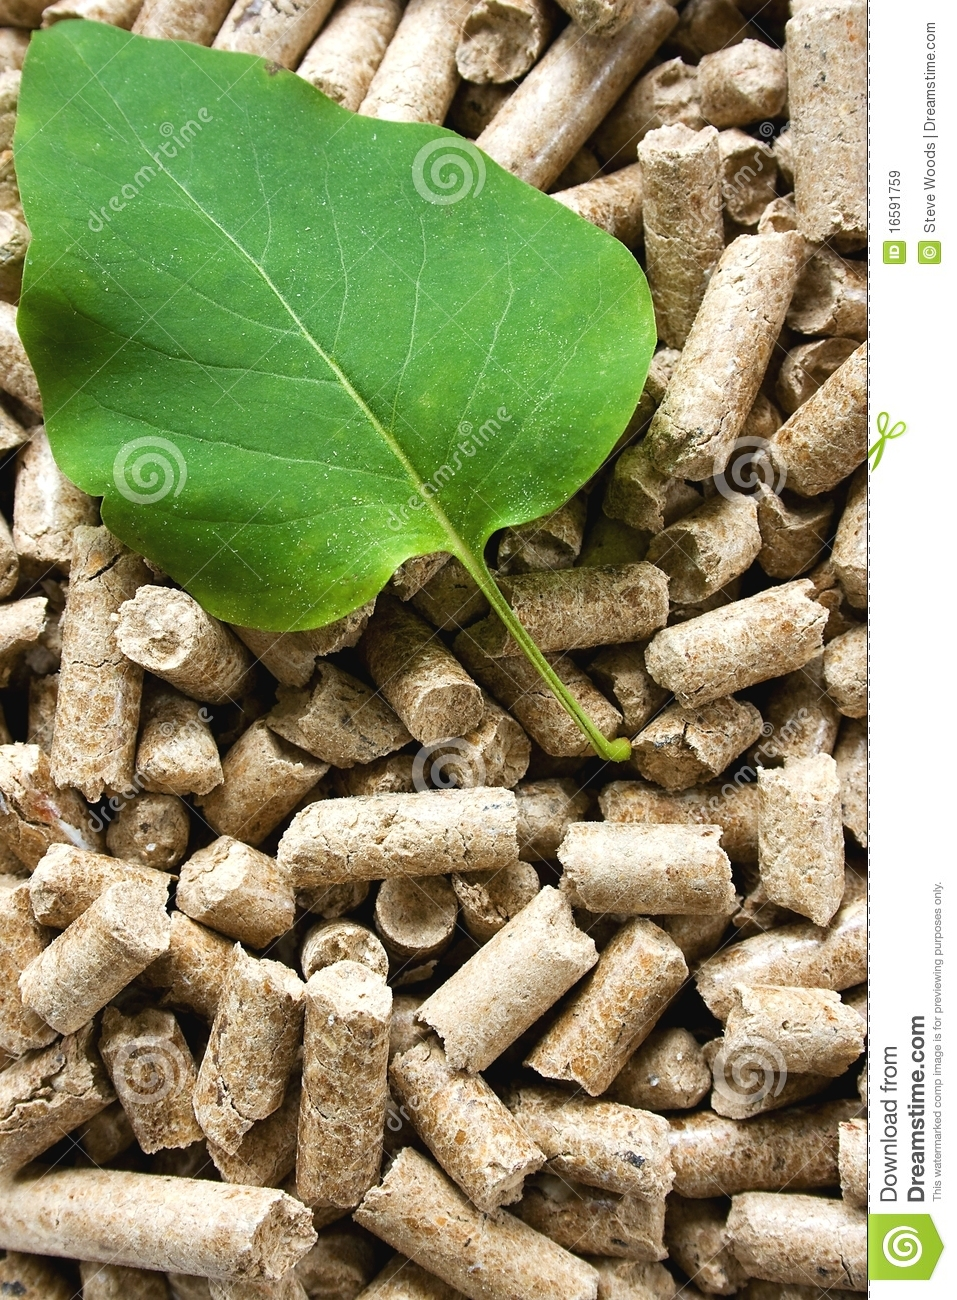 Wood Pellets Amp Green Leaf Stock Image Cartoondealer Com